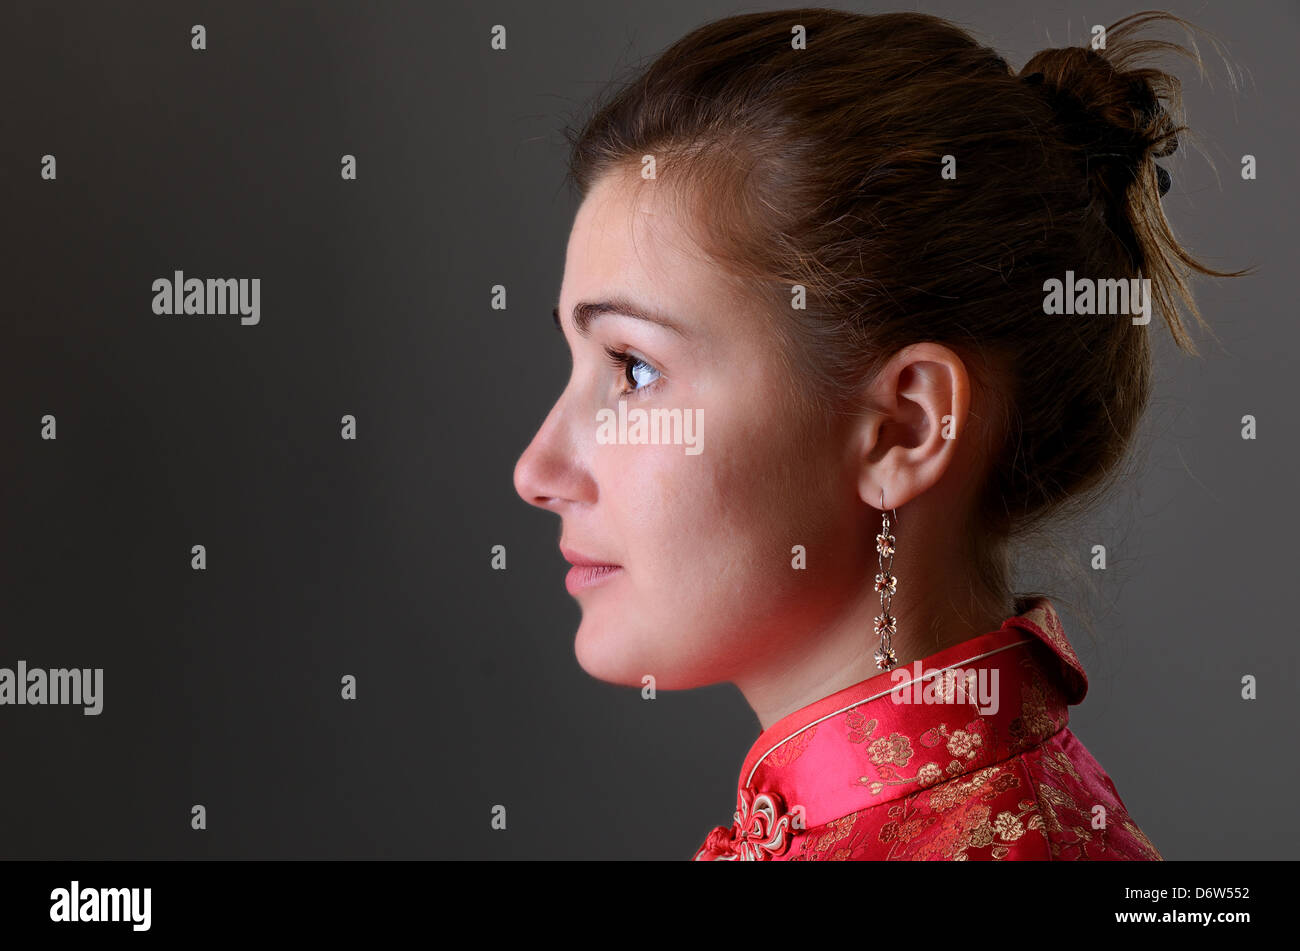 88491b13a Caucasian girl in the Chinese dress · OlegMit / Alamy Stock Photo